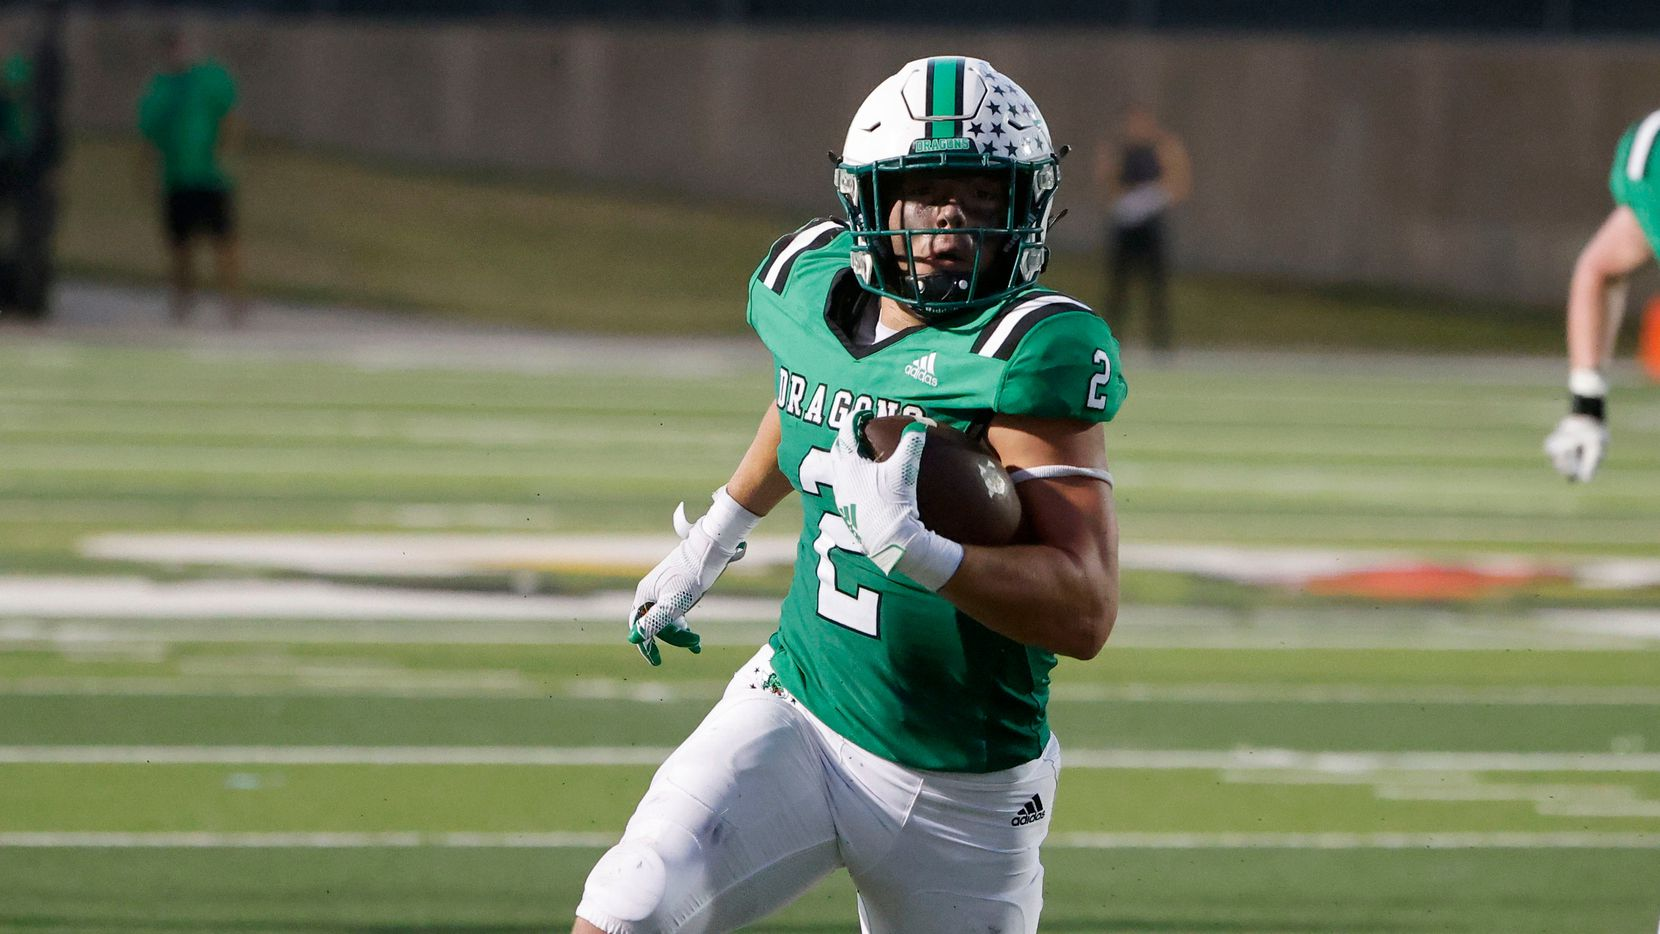 Southlake Carroll running back Owen Allen (2) runs for a touchdown against Arlington Martin during a high school football game in Southlake, Texas on Friday, Sept. 17, 2021. (Michael Ainsworth/Special Contributor)